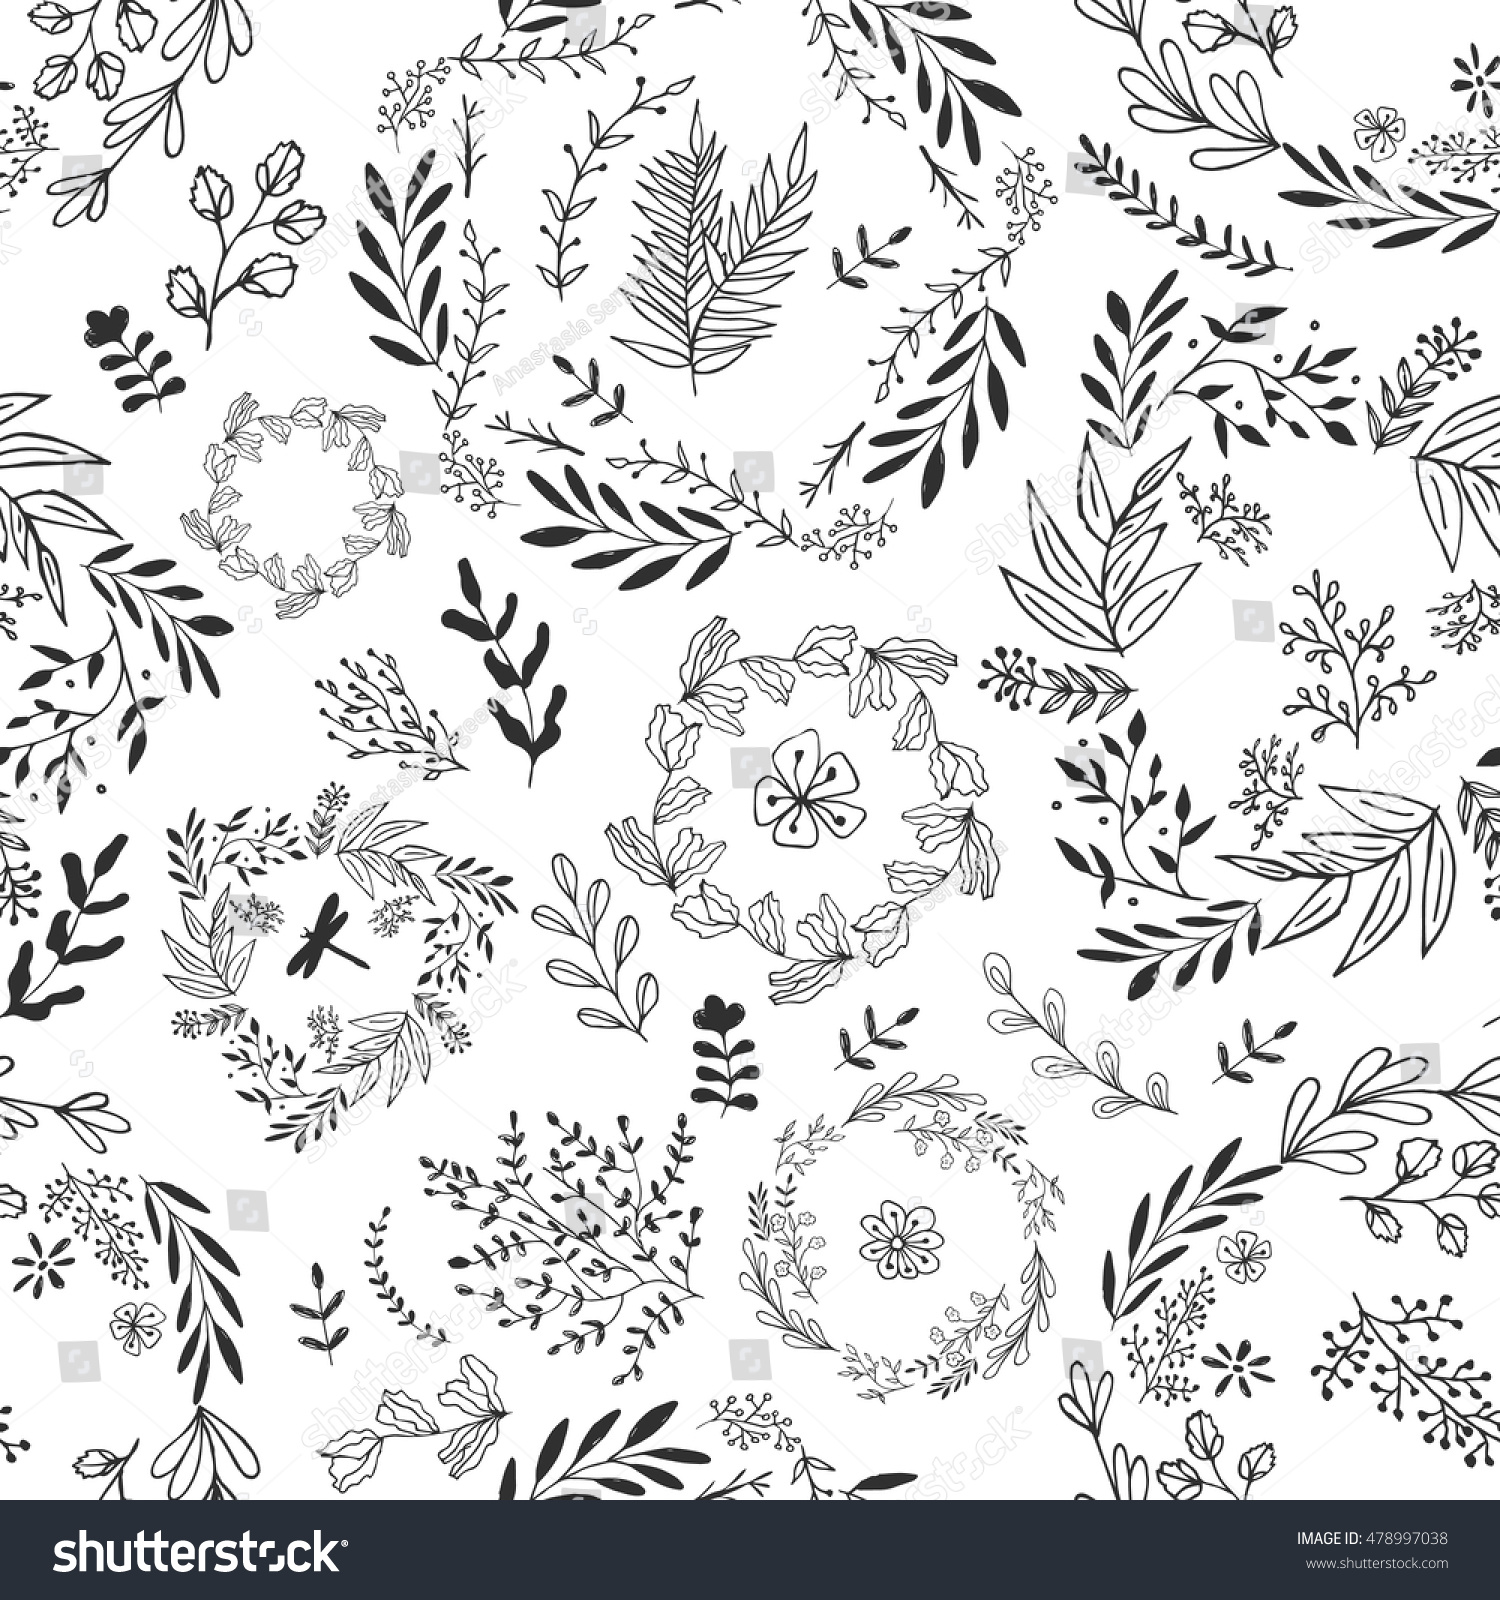 Hand Drawn Vector Flower Seamless Pattern Stock Vector (Royalty Free